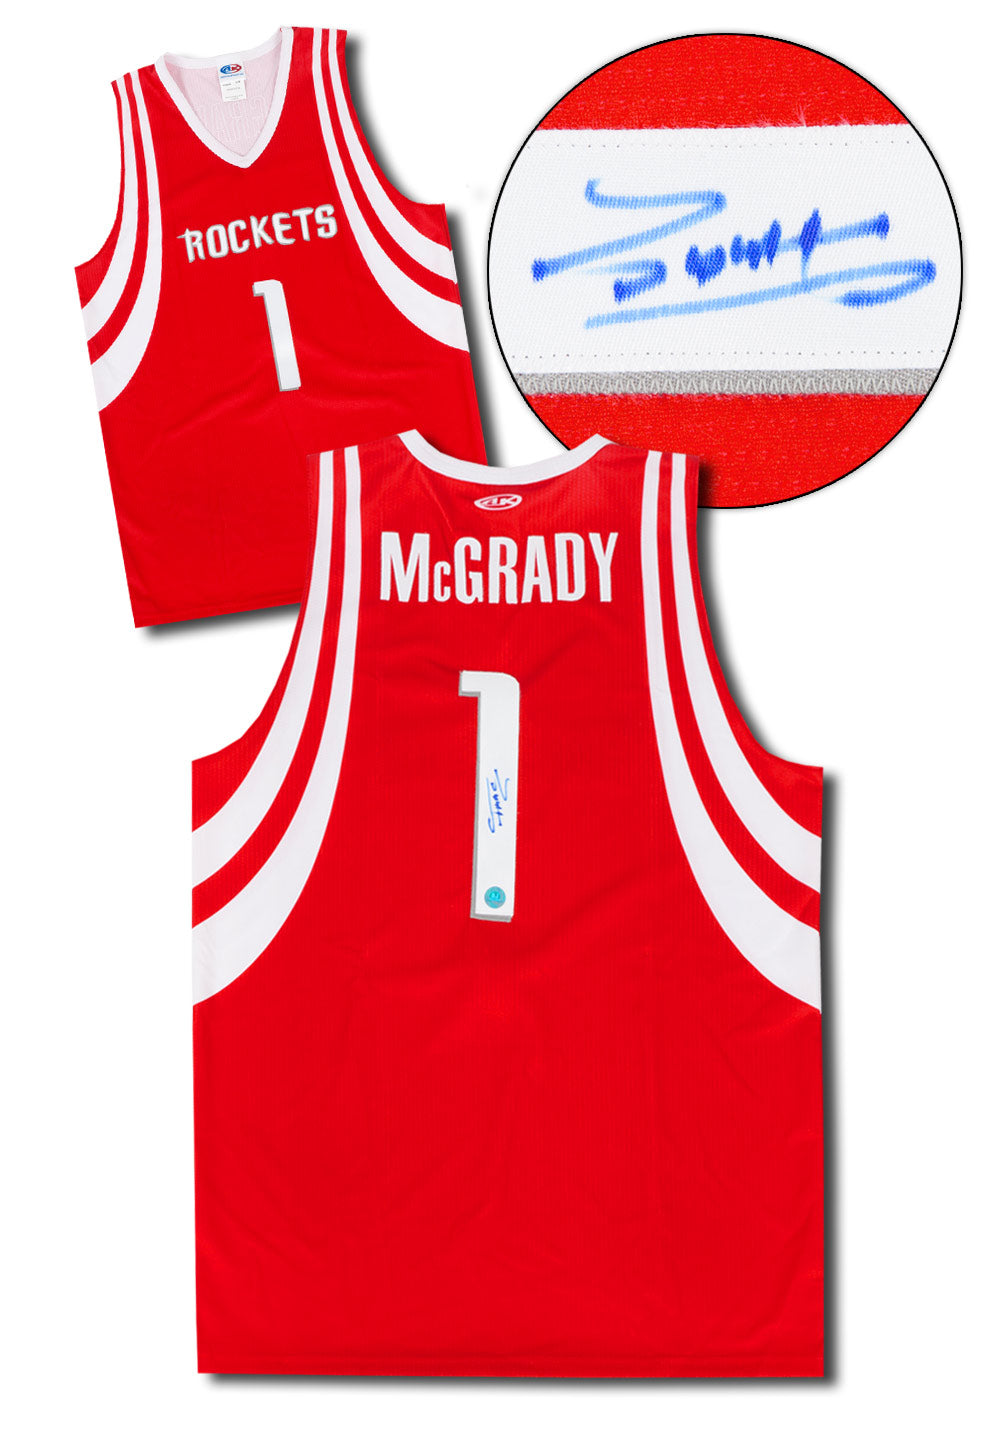 size 40 b8458 fe3c1 Tracy McGrady Houston Rockets Autographed Custom Basketball Jersey